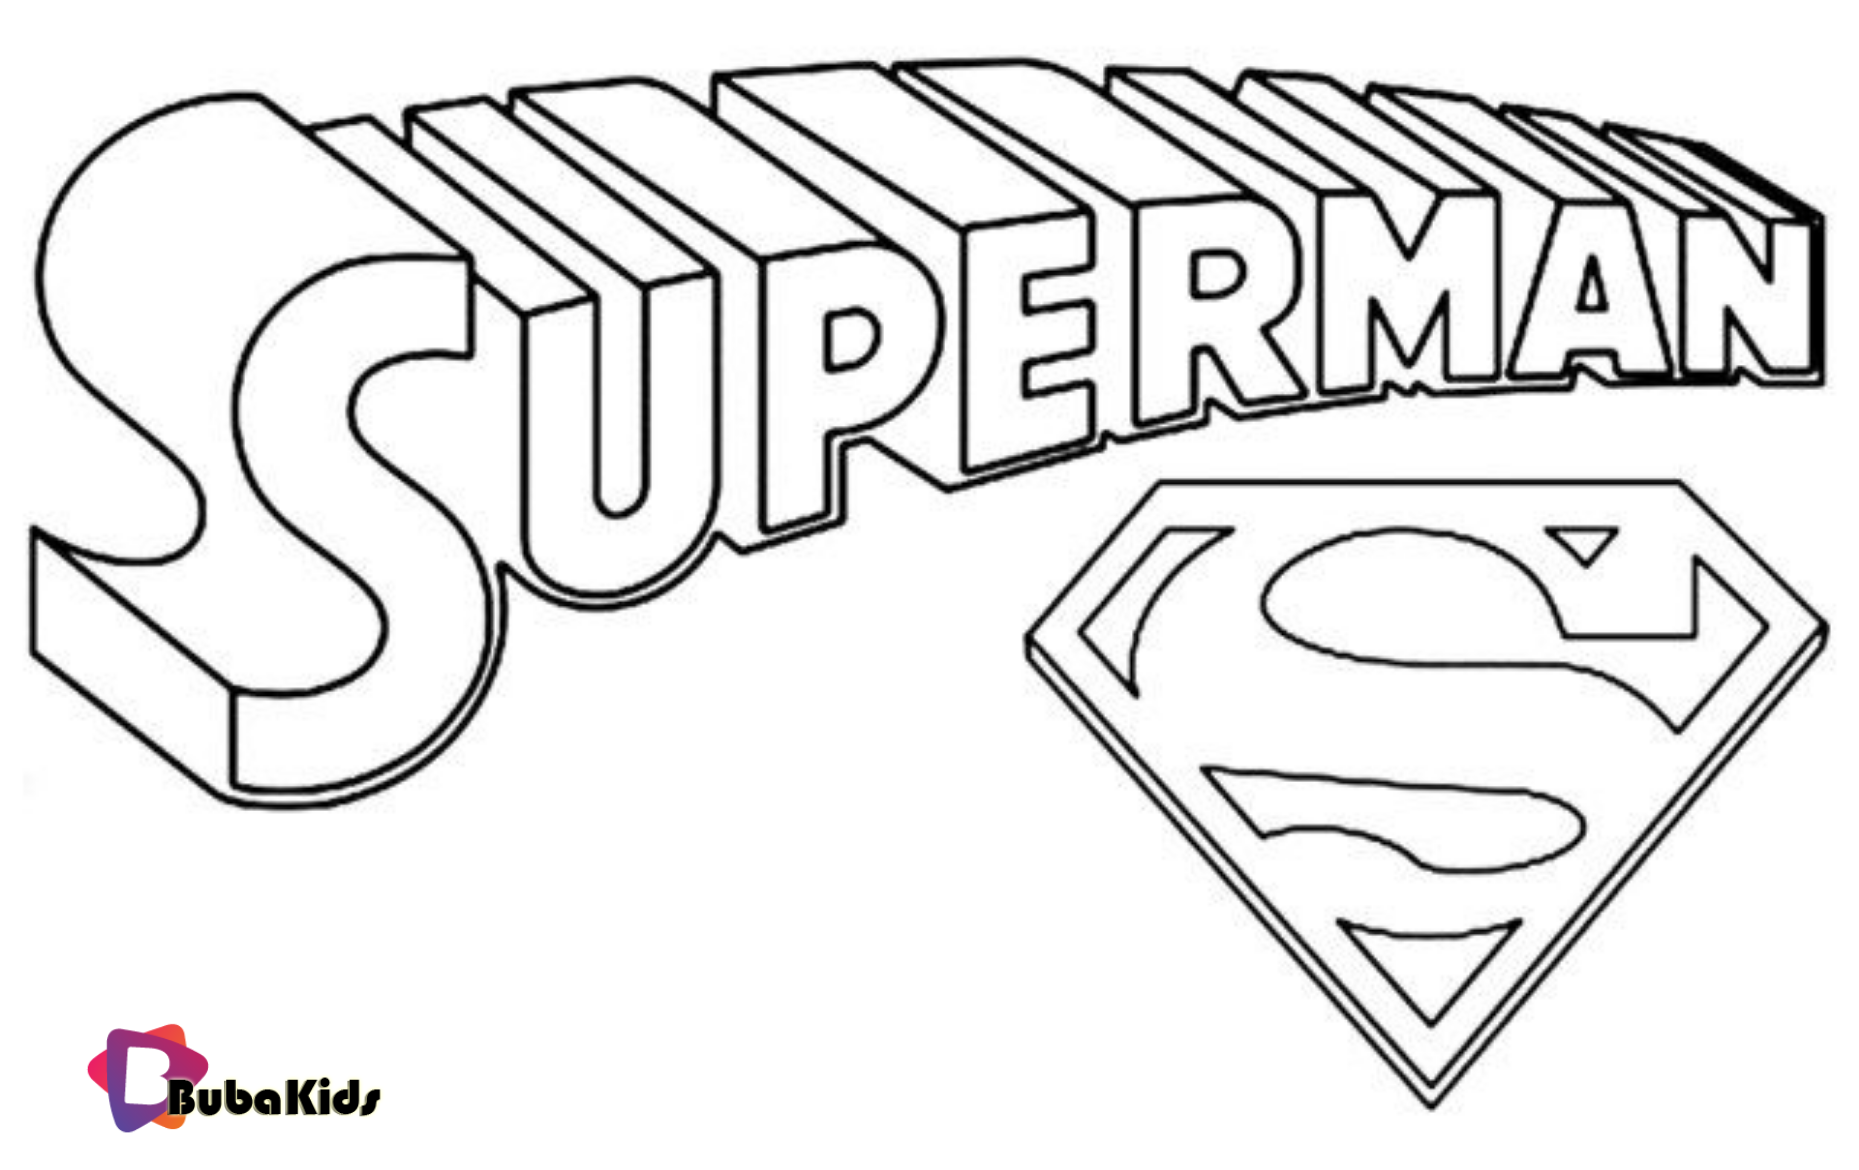 Superman Logo Printable Coloring Page Coloring Page Photo Superhero Superman Coloring Superman Coloring Pages Superhero Coloring Superhero Coloring Pages